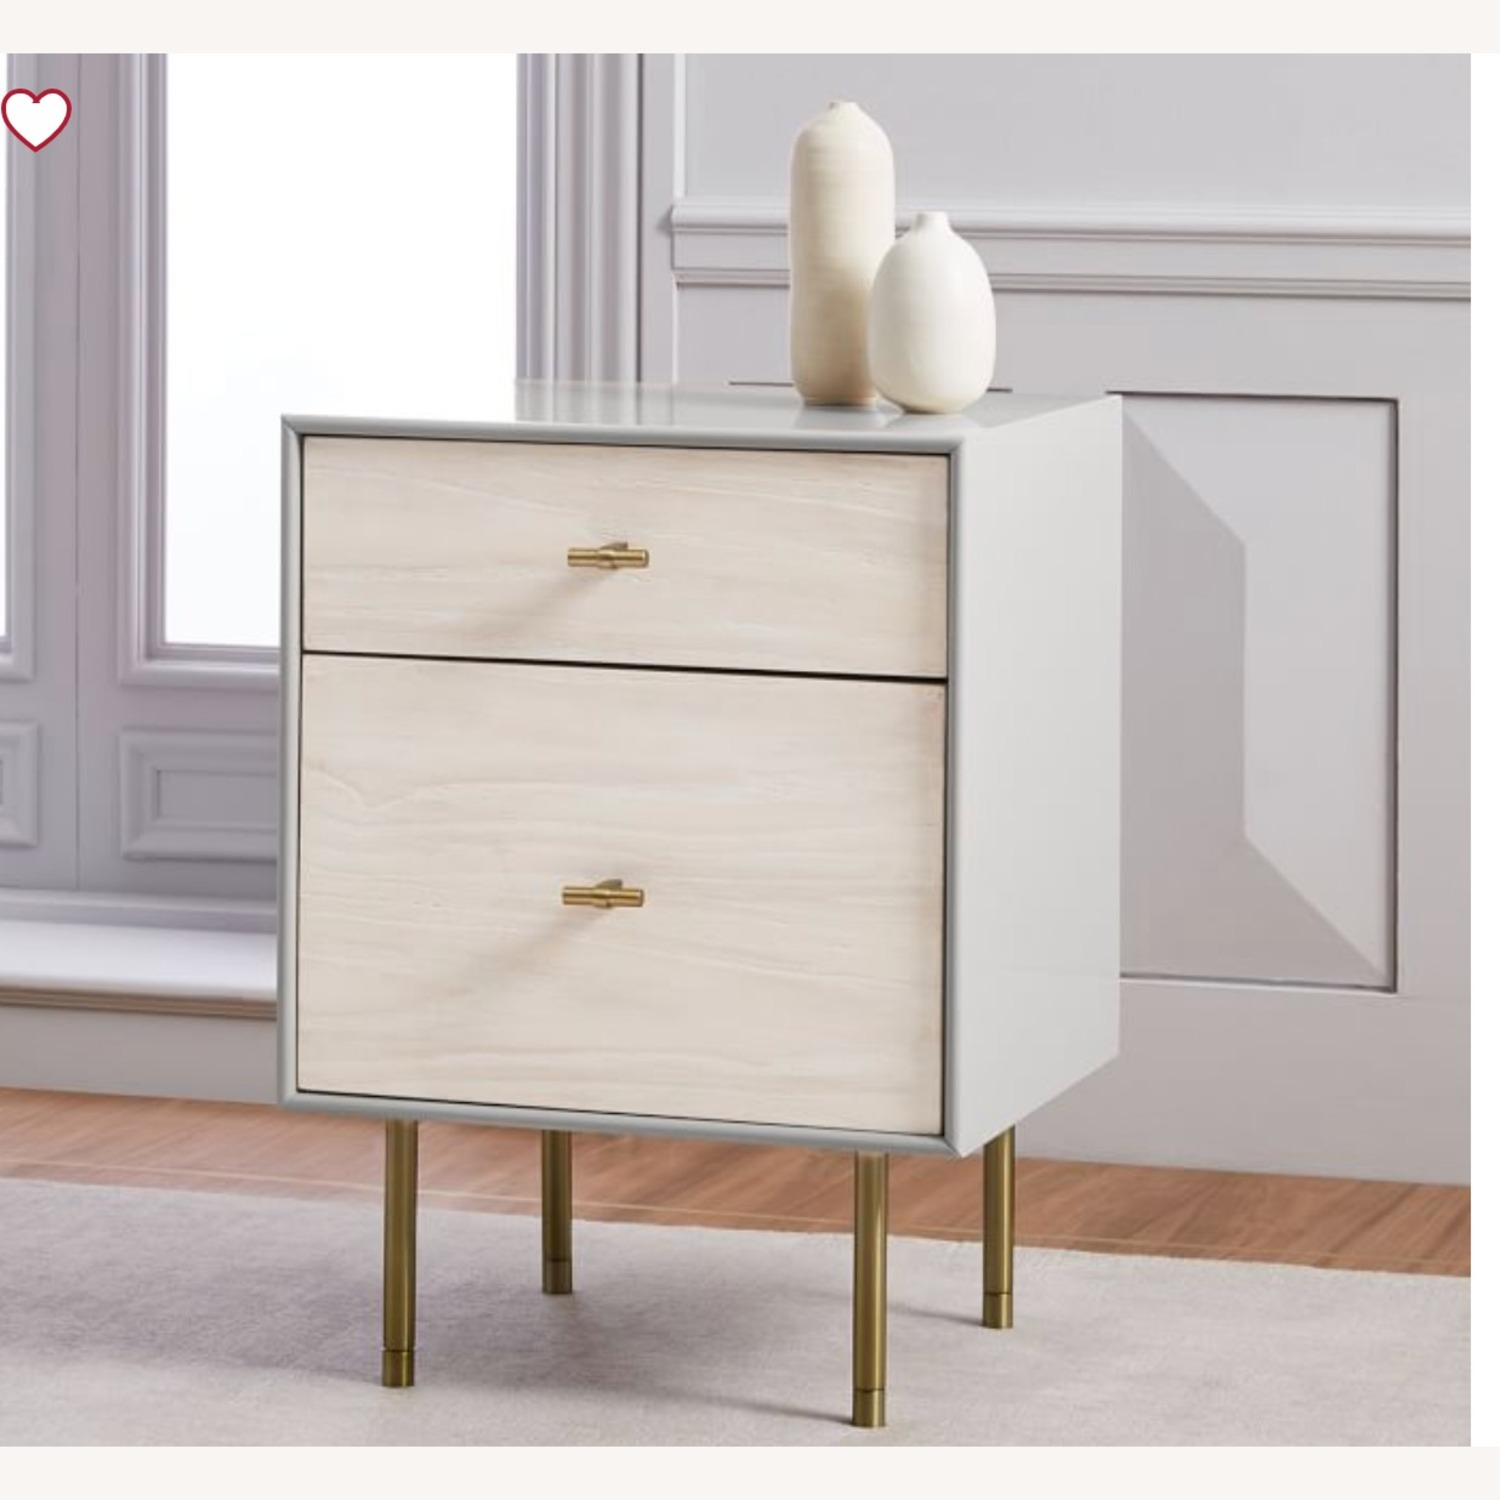 West Elm Modernist Wood & Lacquer Nightstand - image-3